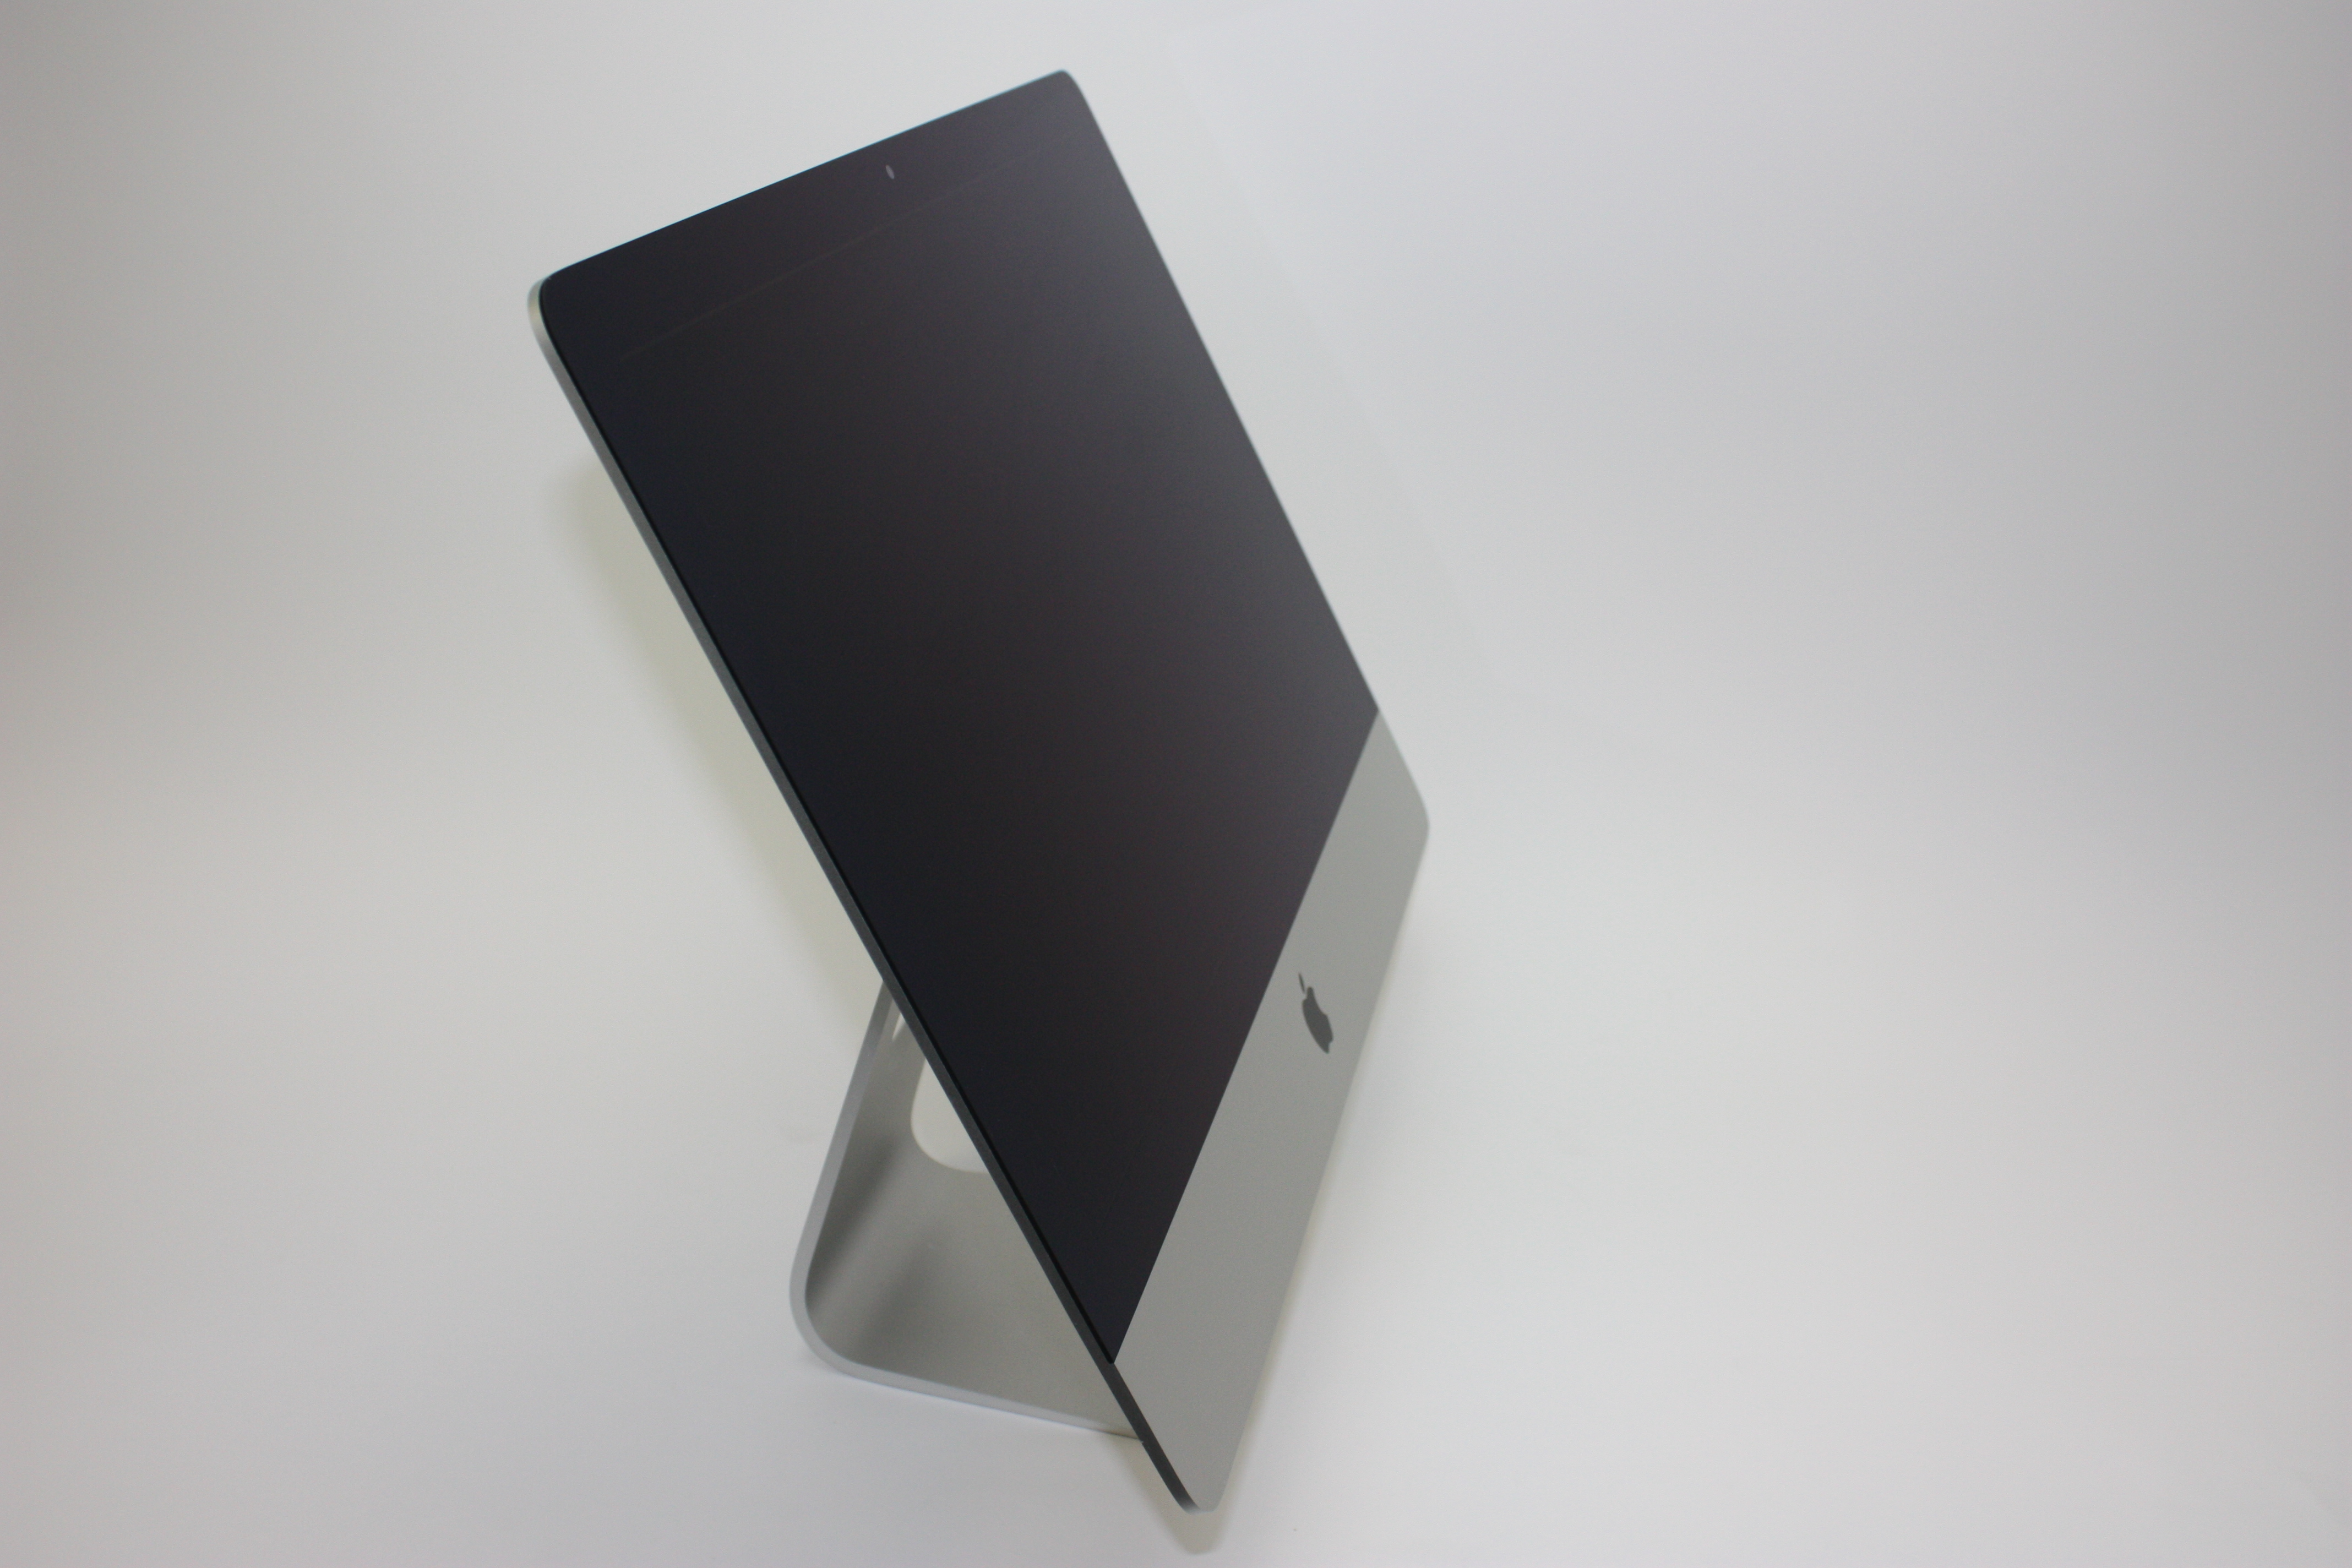 iMac 21.5-inch, 2.7 GHz Intel Core i5, 8 GB 1600 MHz DDR3, 1 TB SATA Disk, Product age: 52 months, image 2